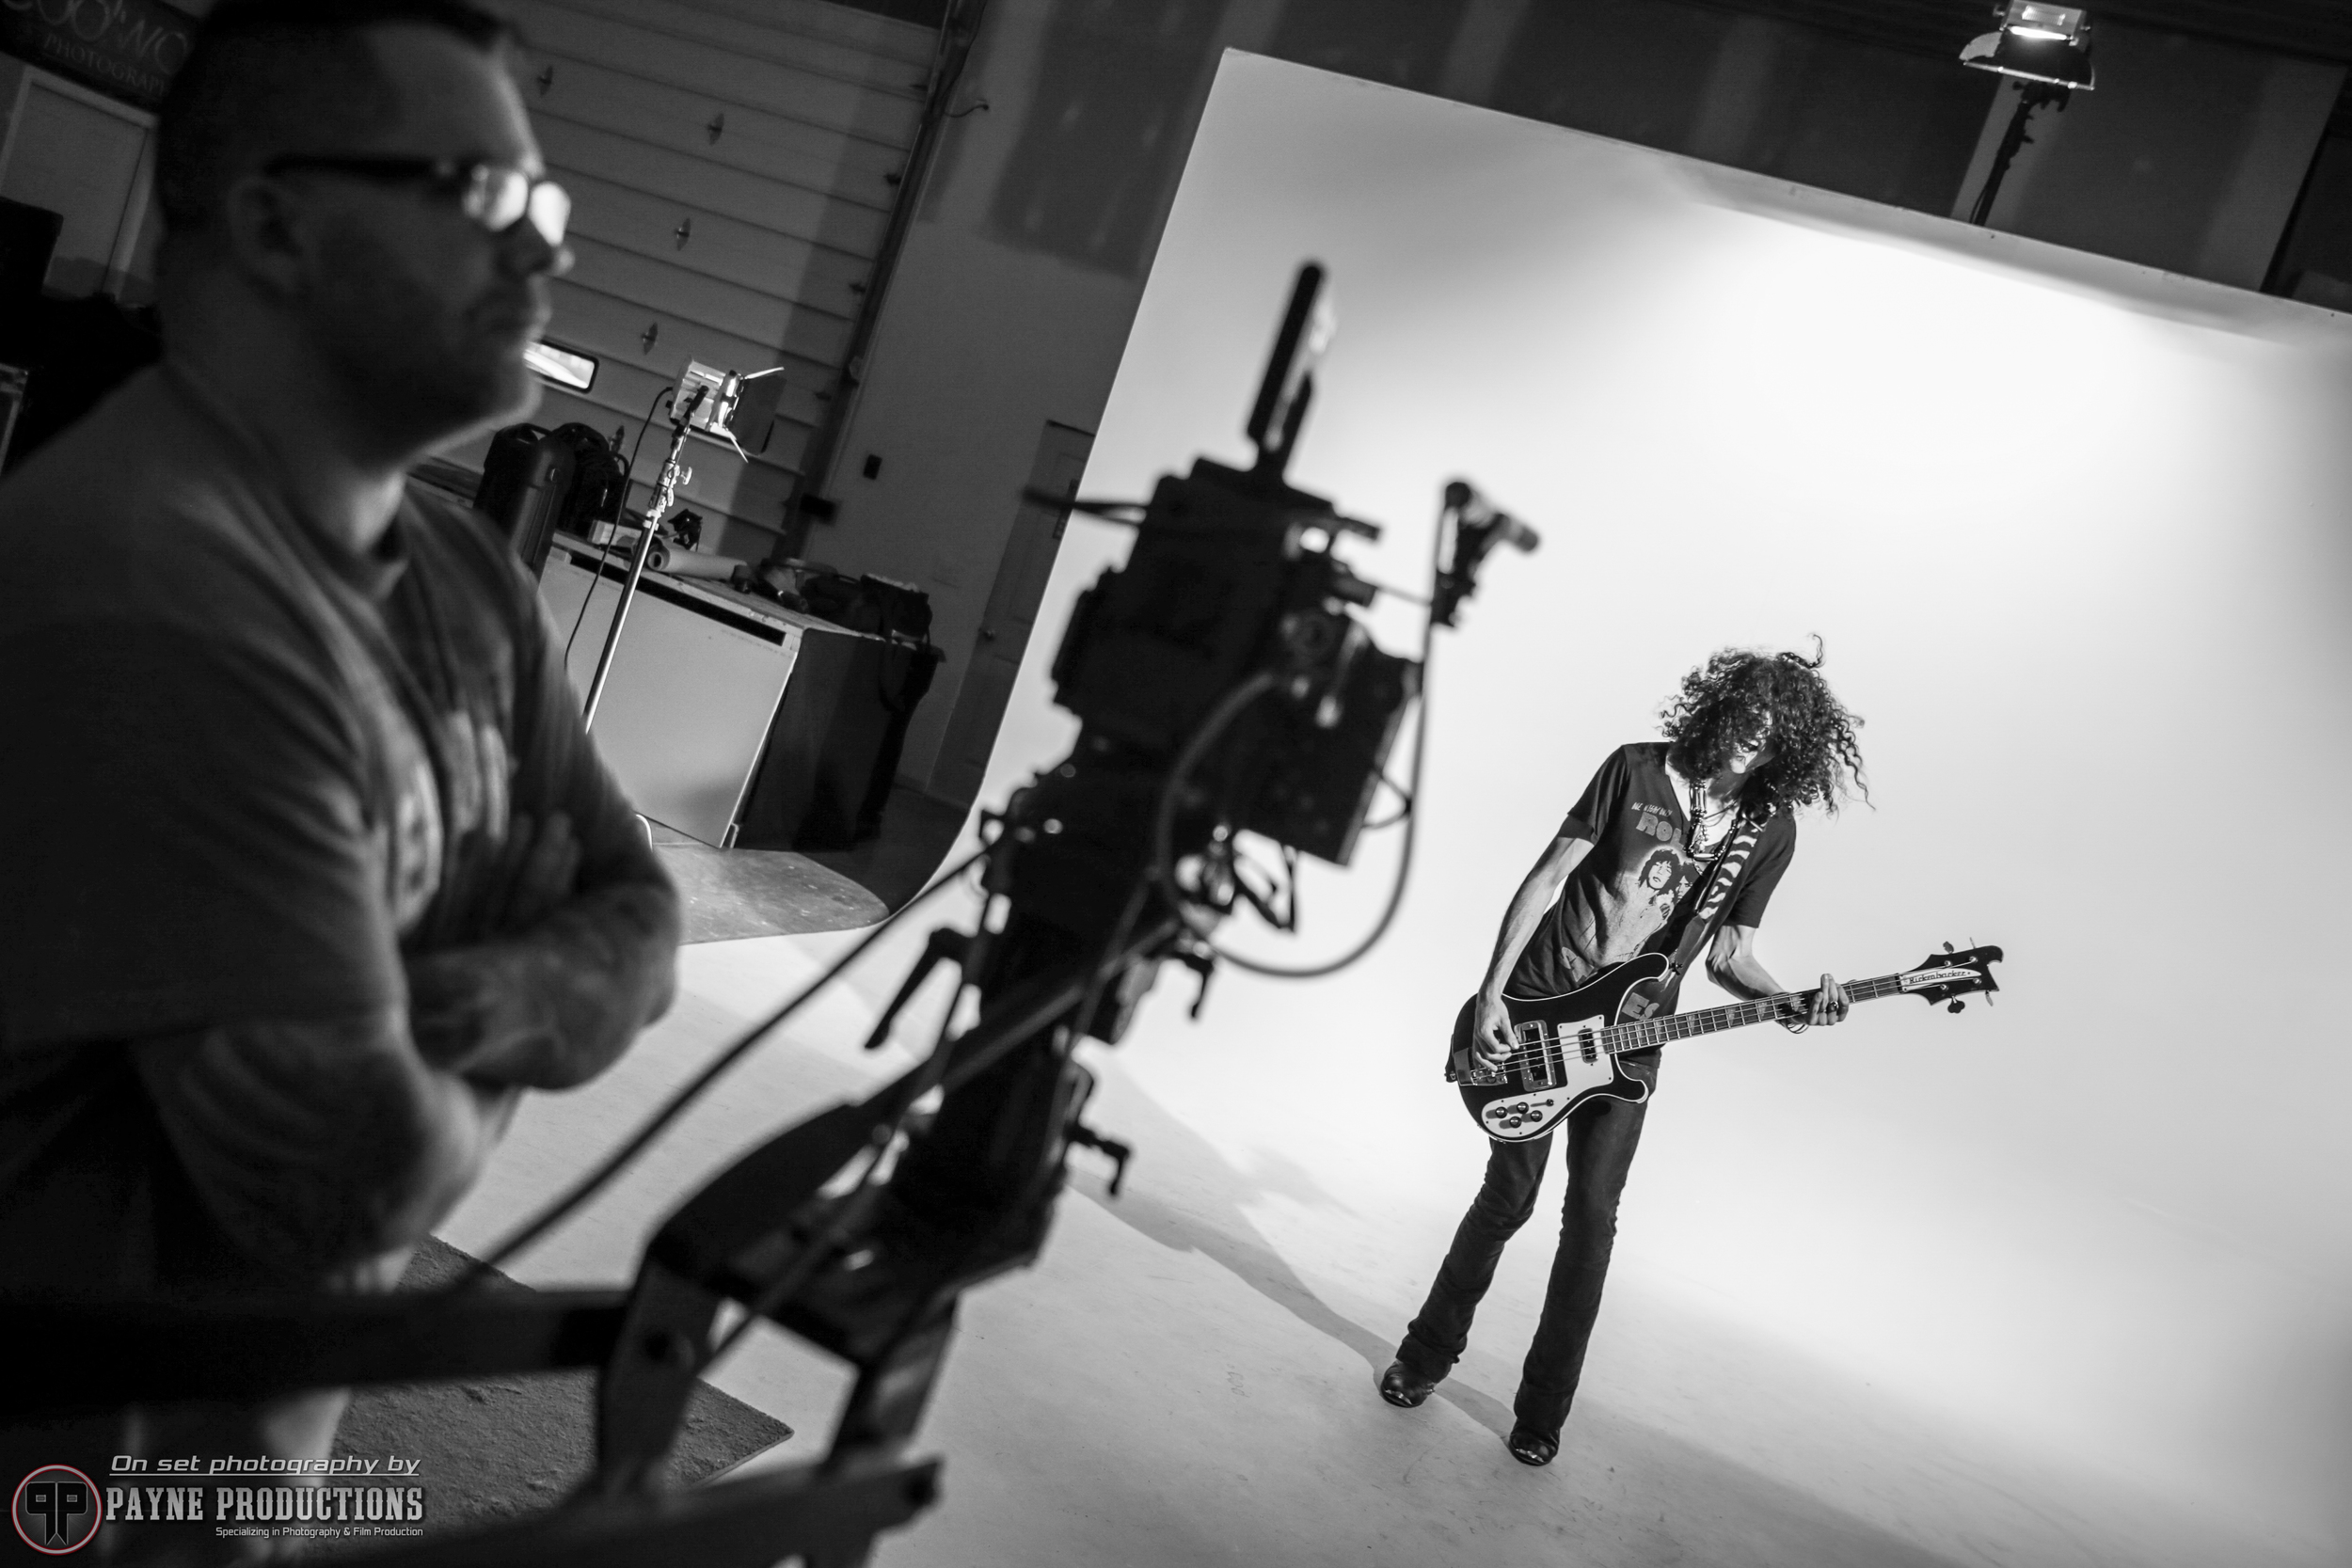 behind the scenes of bobaflex's mama don't take my drugs away music video directed by paul cunningham (cool world photography)